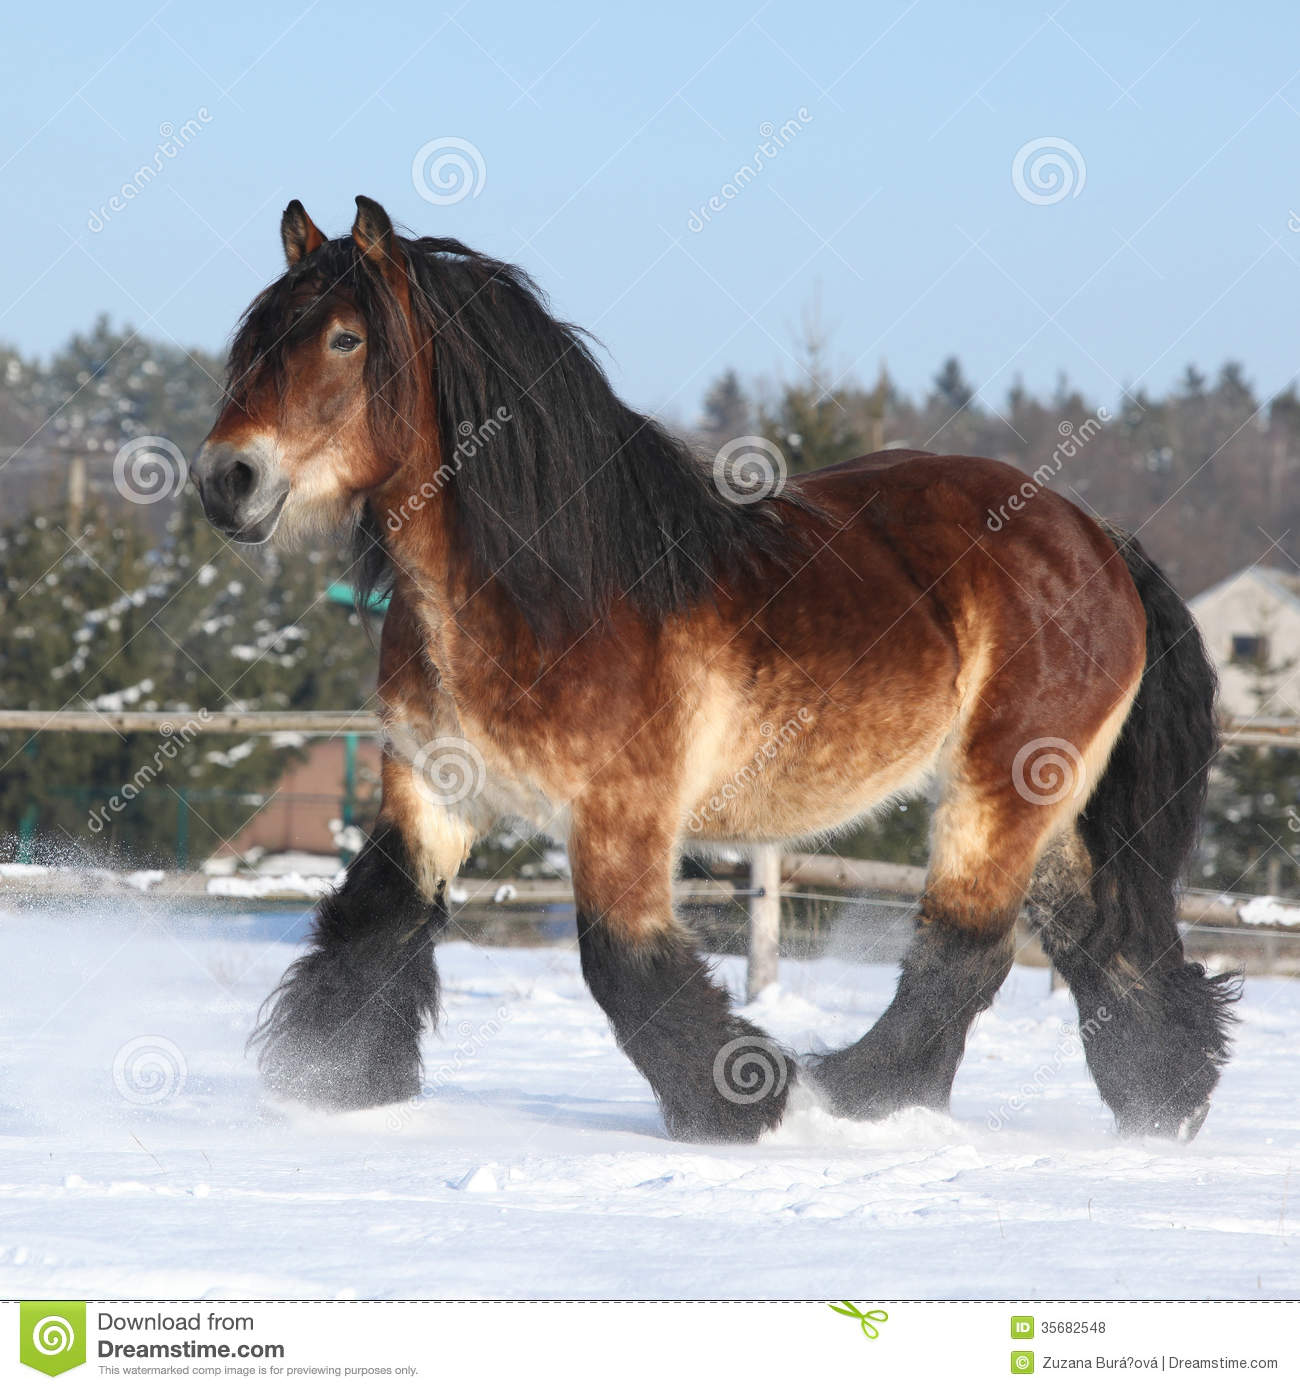 Dutch Dreams Dutch Draught Horse With Long Mane Running In Snow Stock